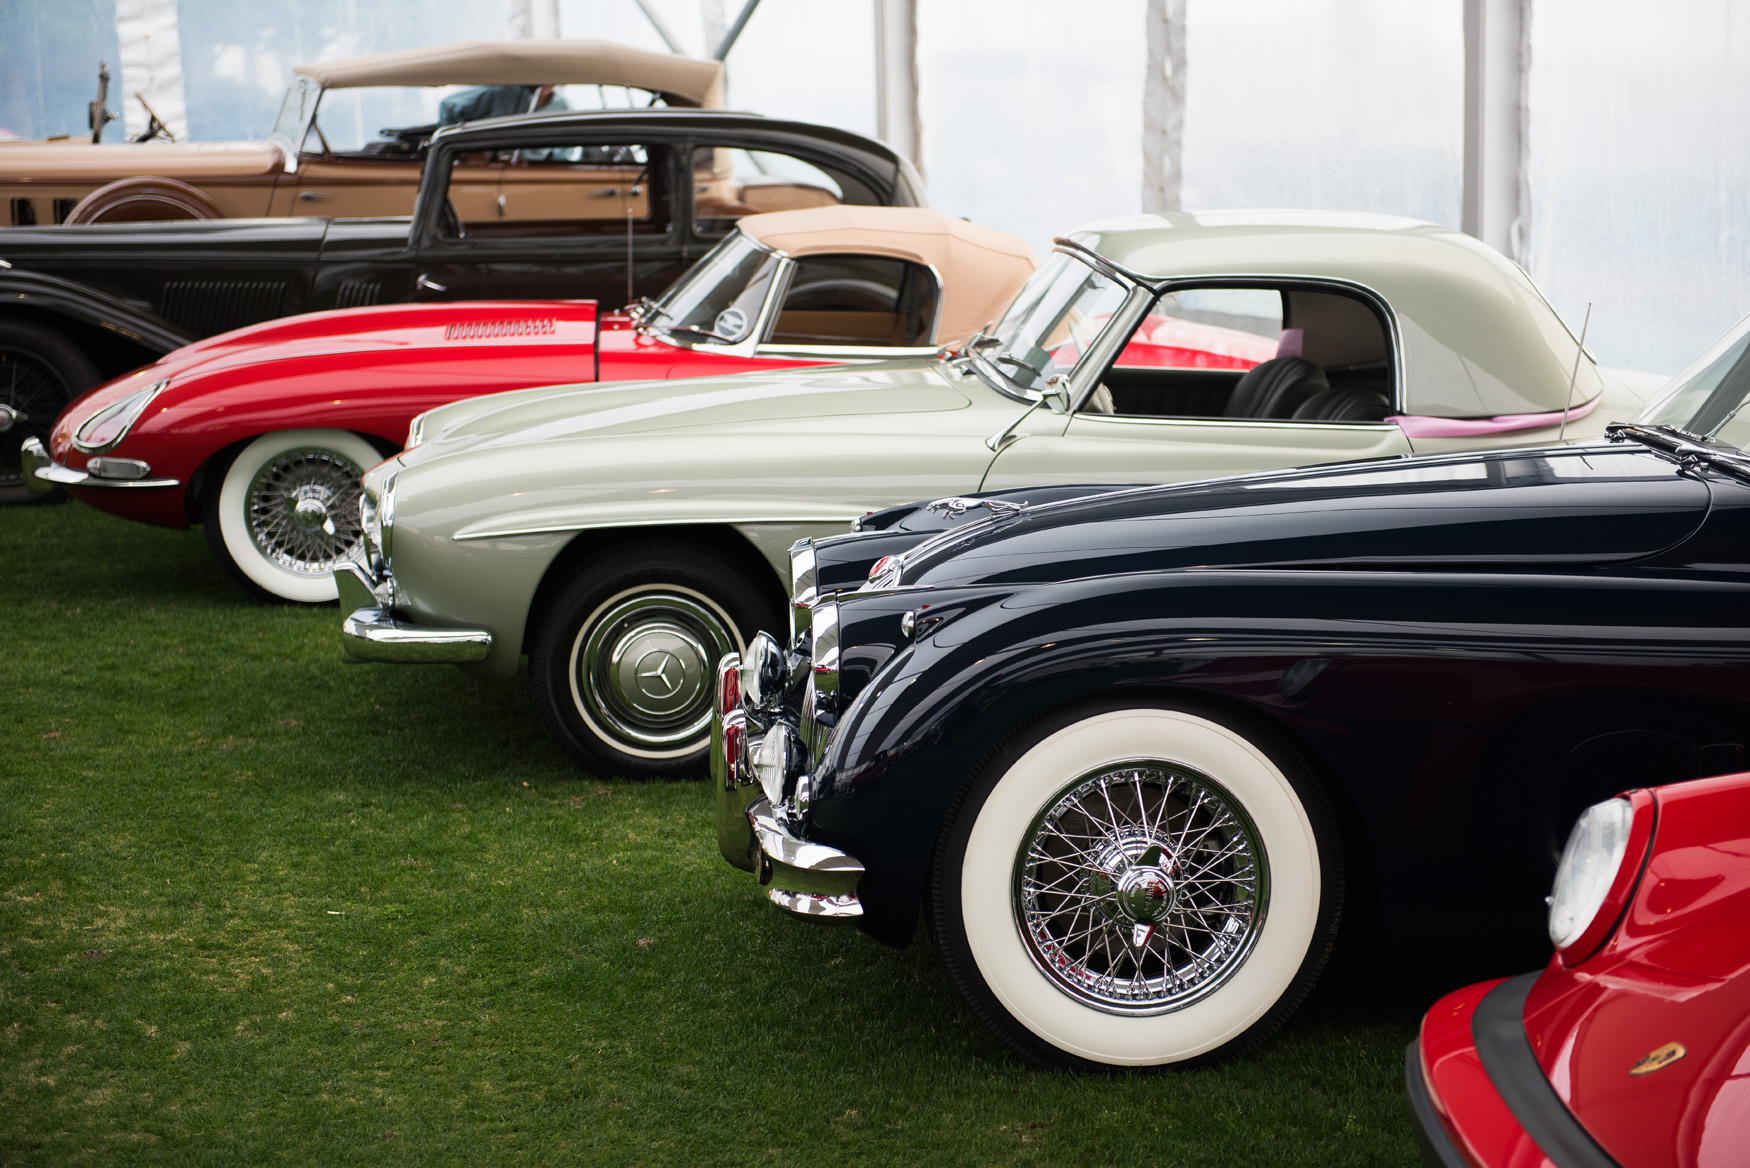 With $101.15 million in sales, Amelia auctions show strong pulse for ...